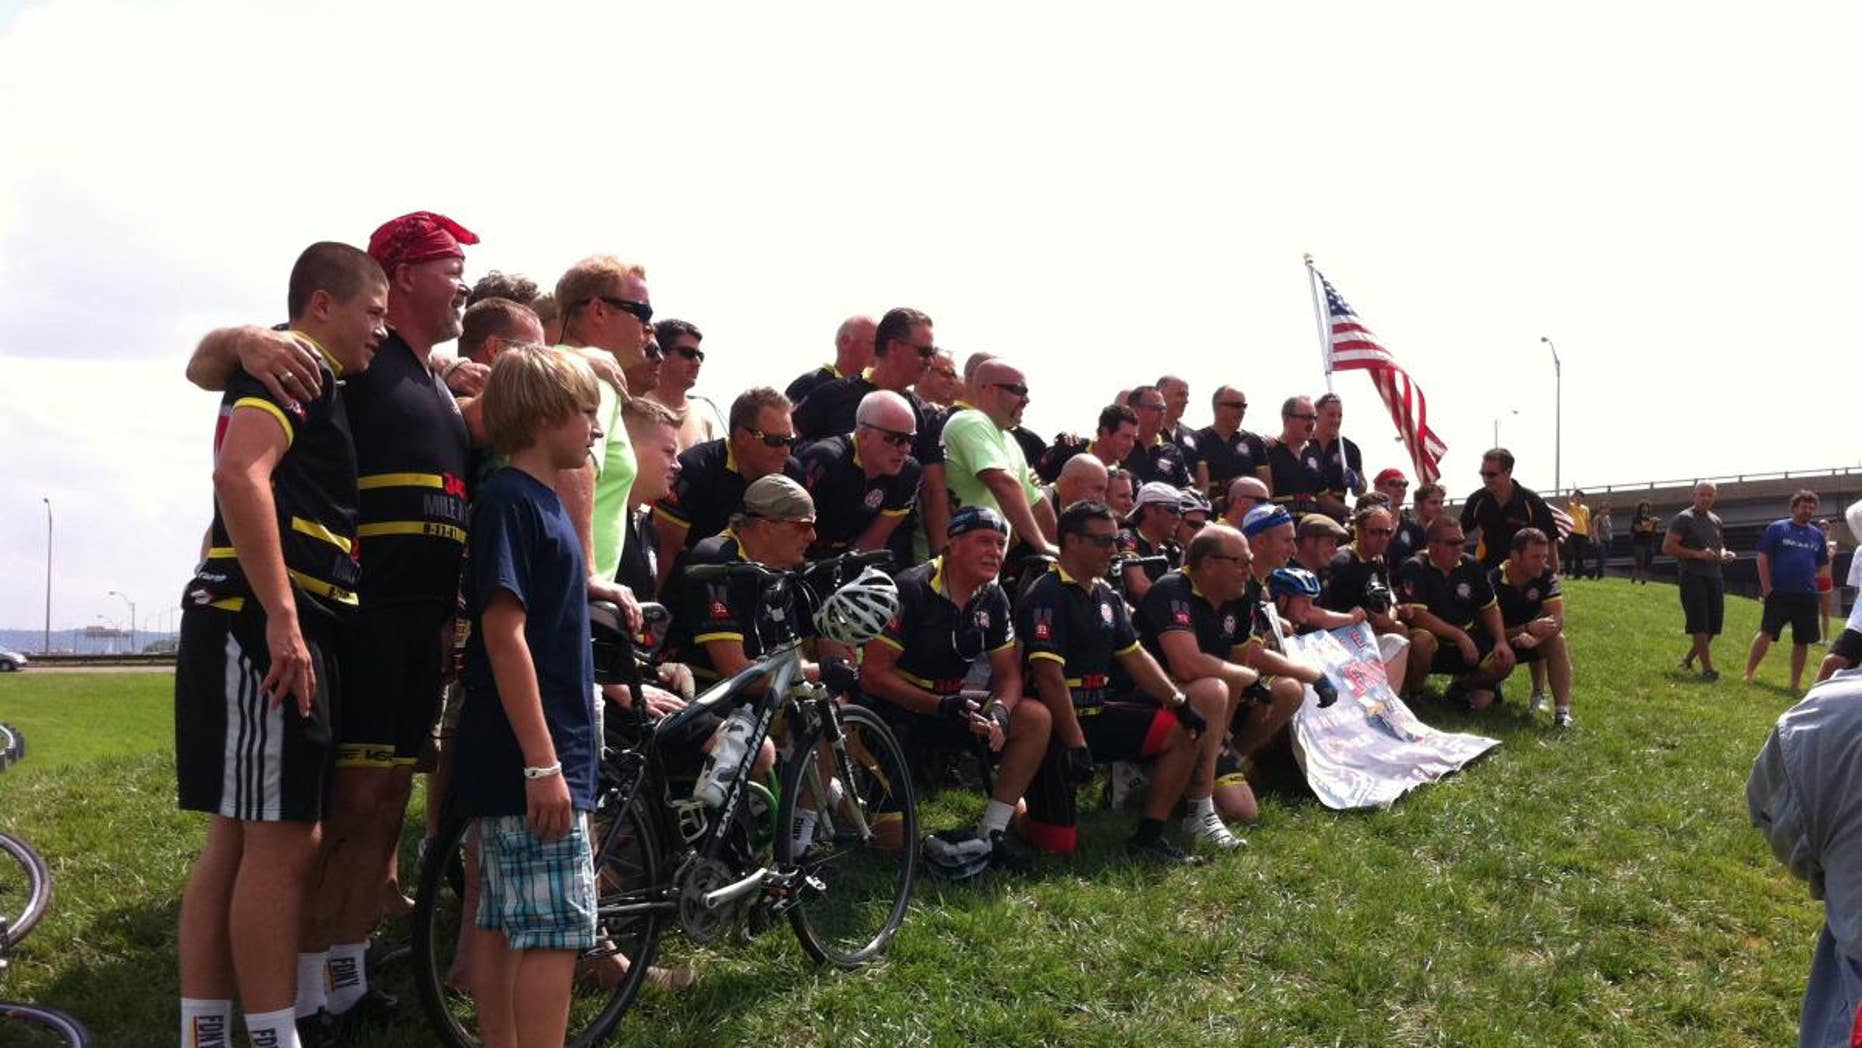 New York firefighters who biked to the Pentagon for Sunday's 9/11 anniversary pose for a picture. (Fox News Photo/Justin Fishel)